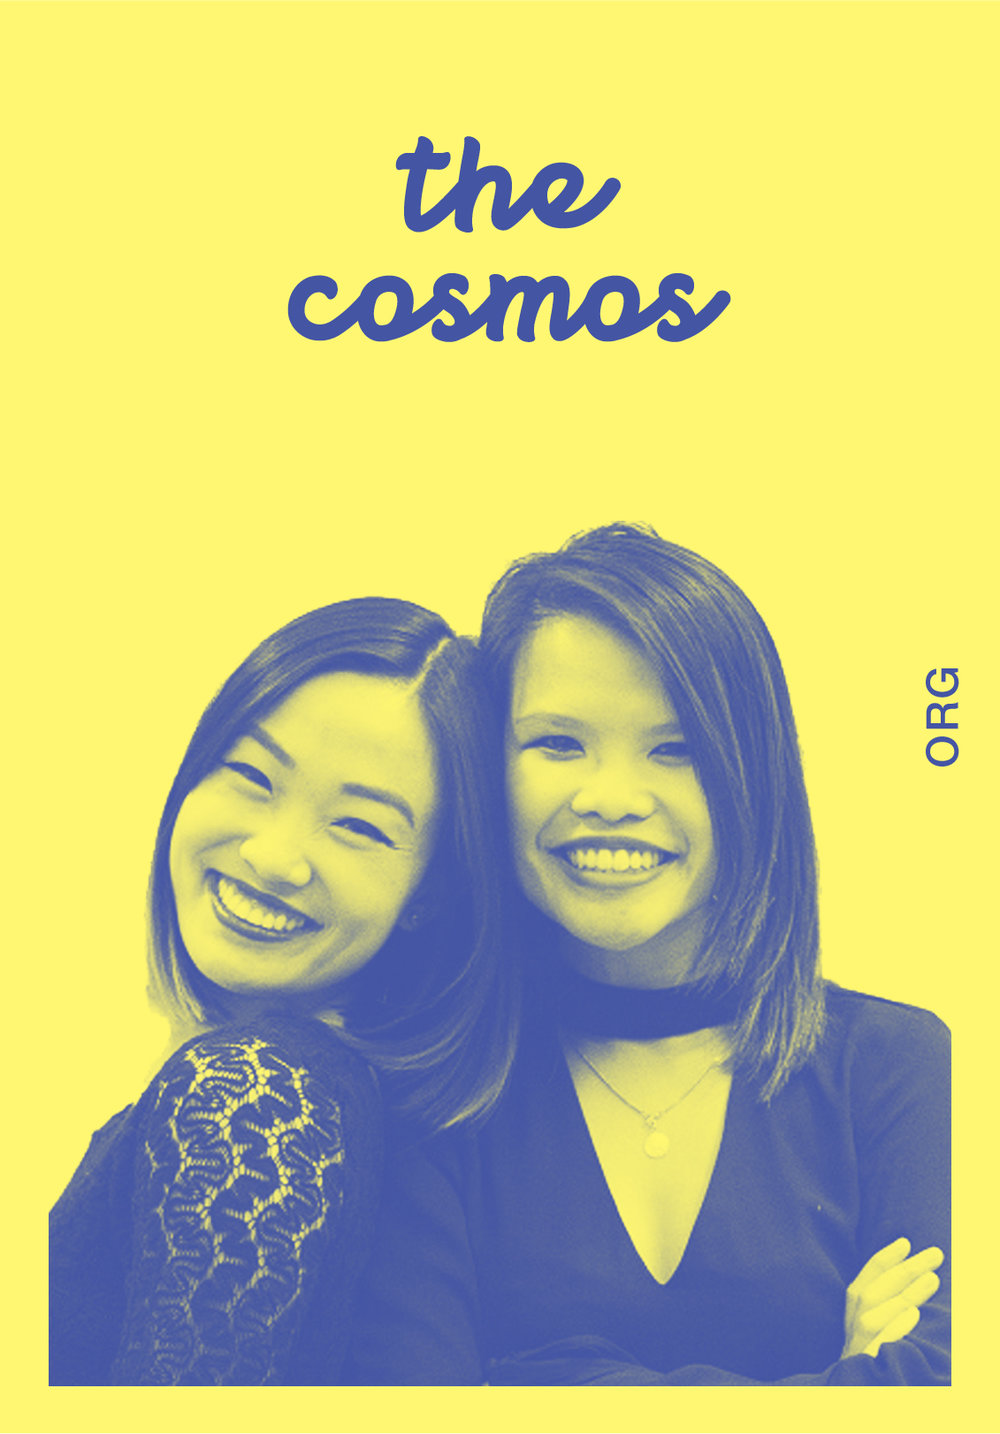 THE COSMOS   WEBSITE   @JOINTHECOSMOS   IG: JOINTHECOSMOS